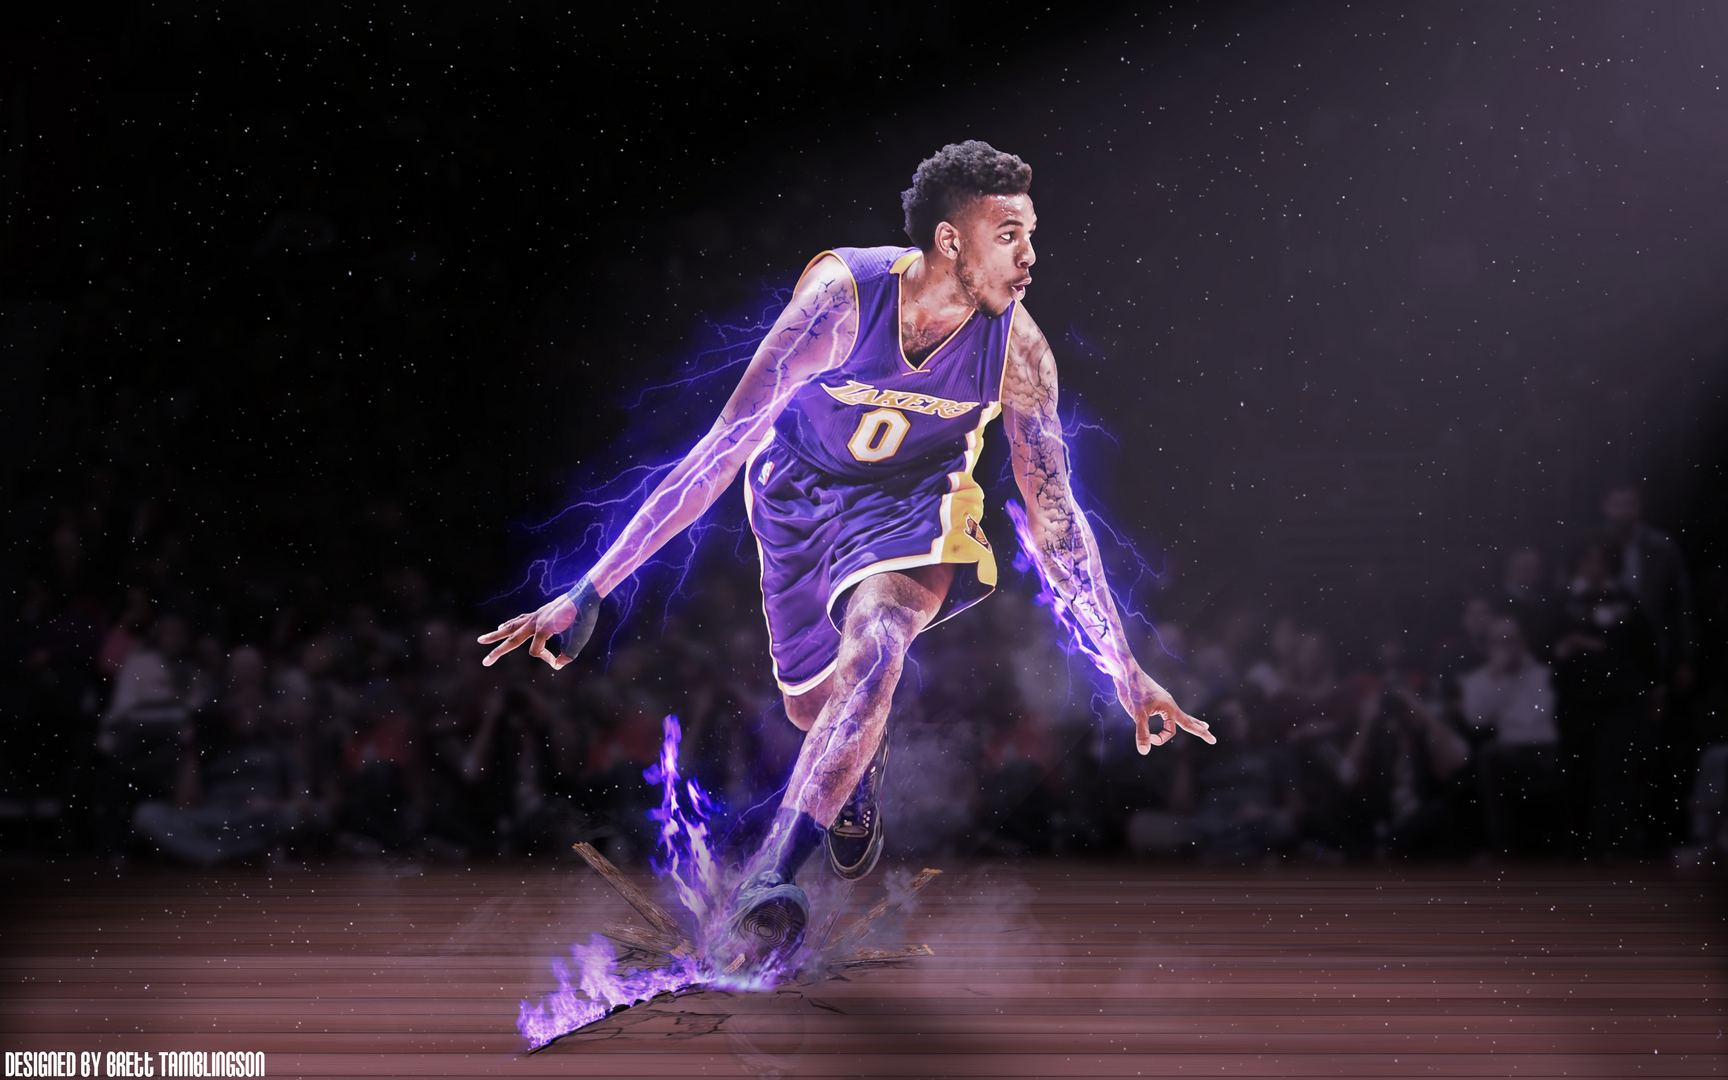 Nick Young wallpaper hd download 1728x1080